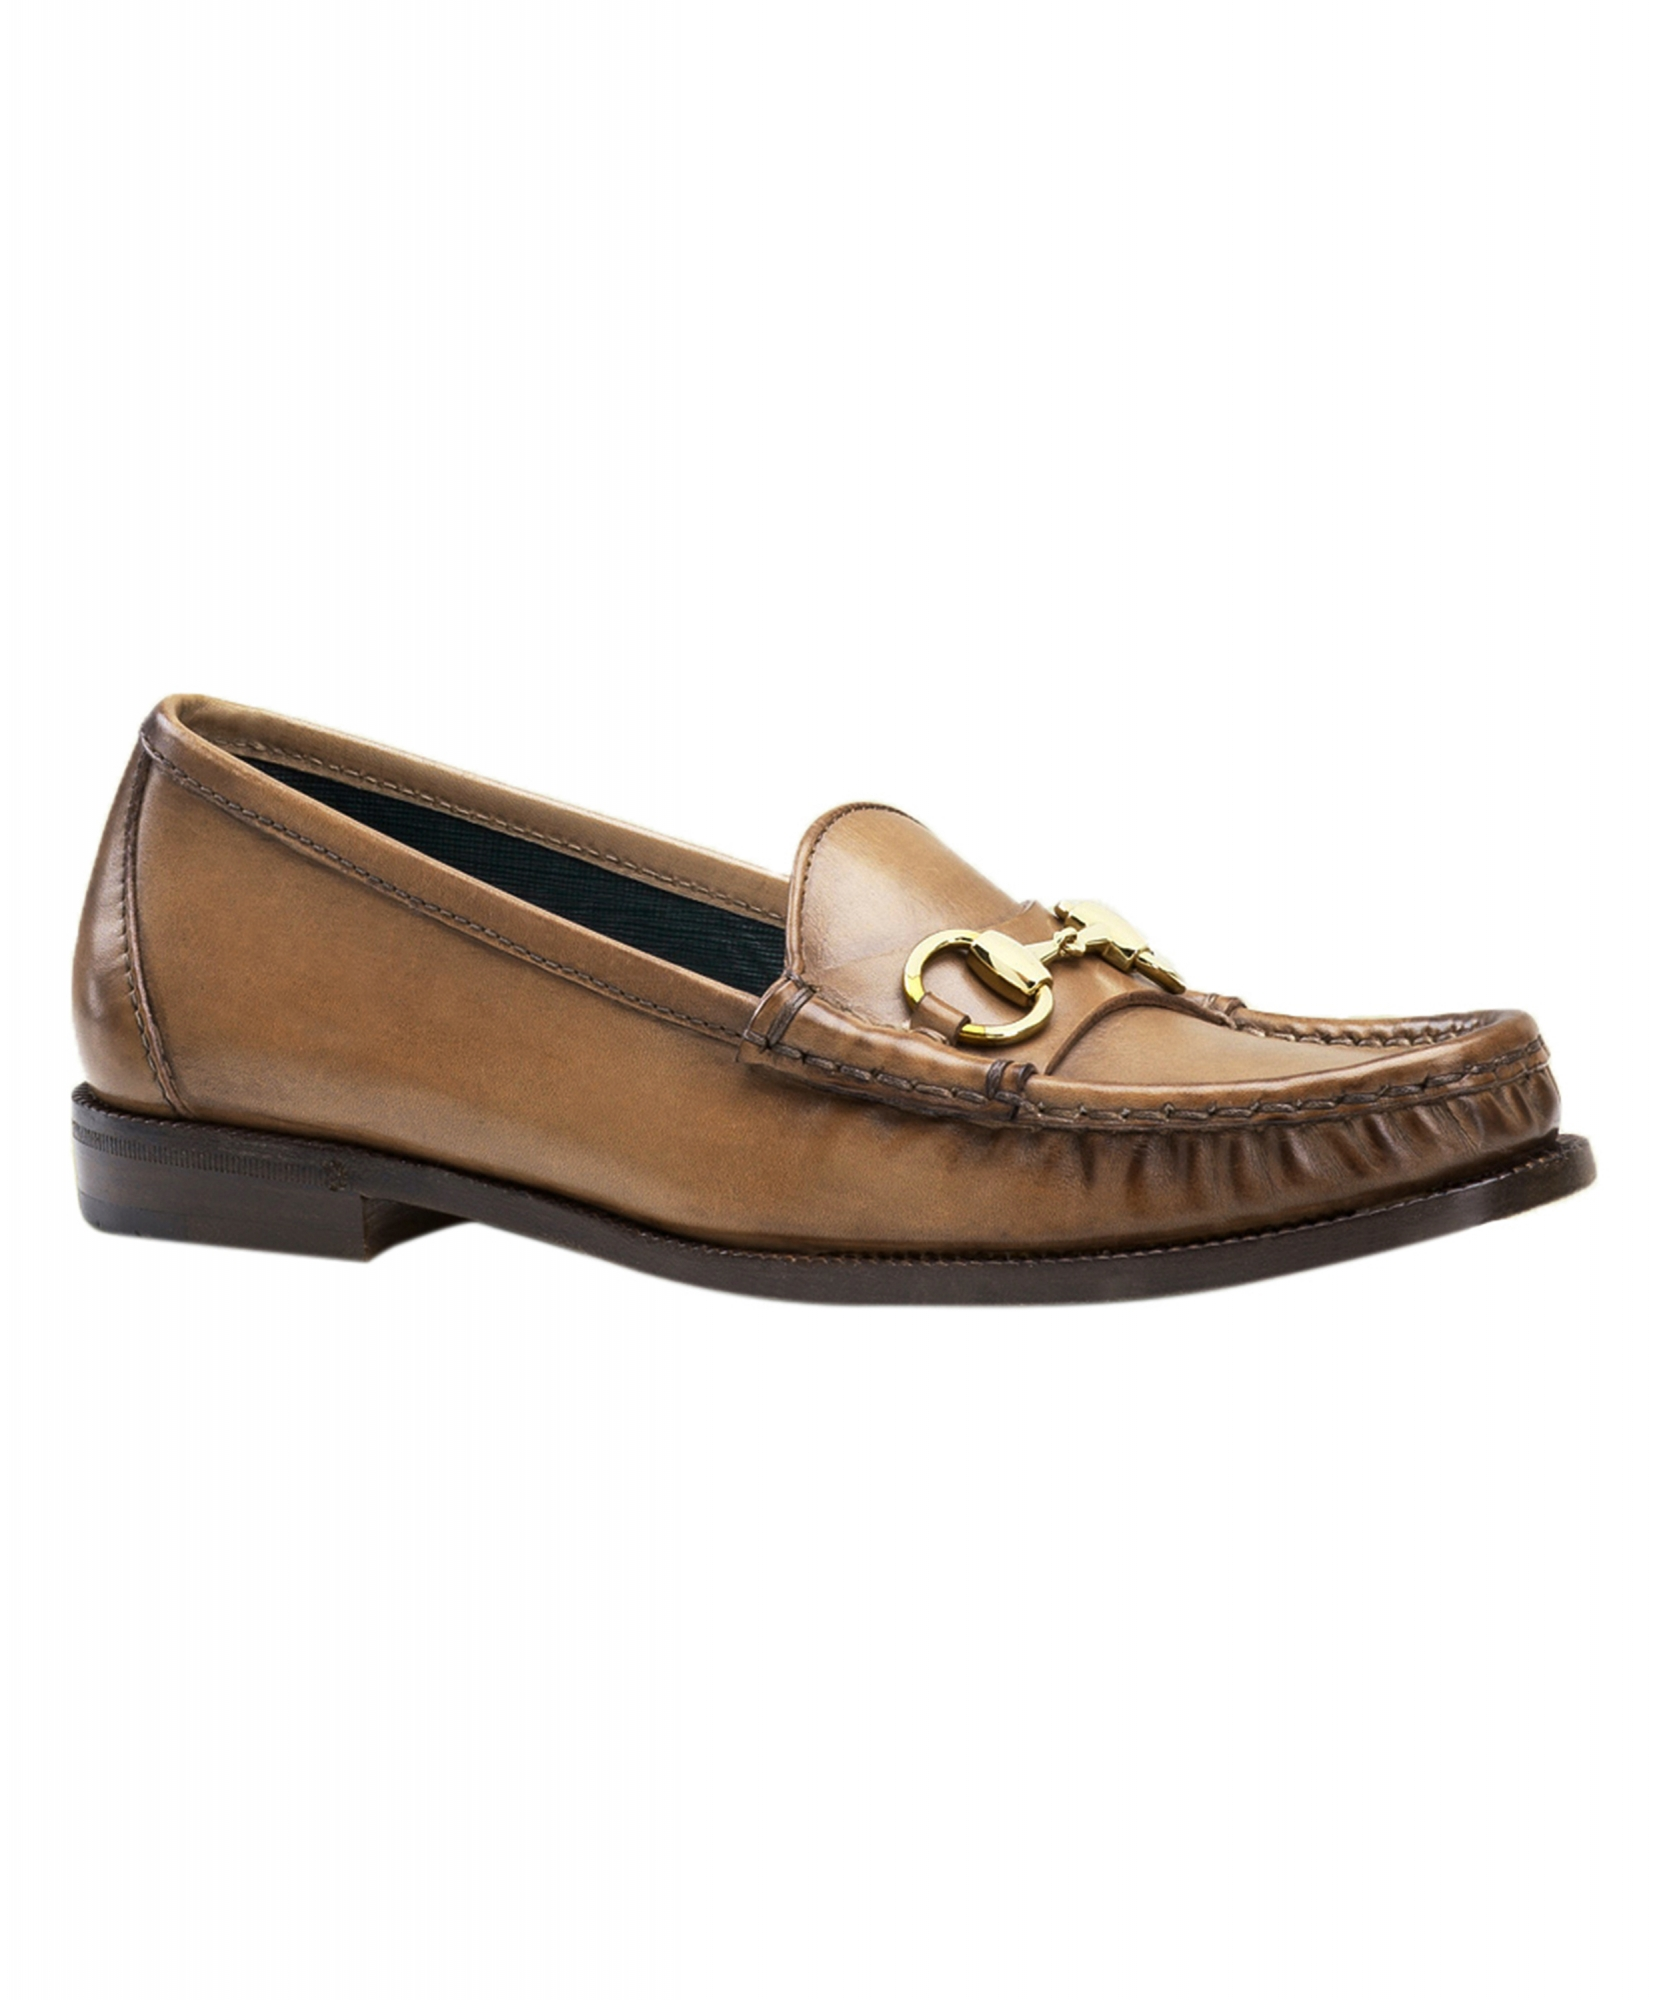 fc62bae78d5 Gucci Women s Brown Hand Shaded Leather 1921 Horsebit Loafers Shoes ...